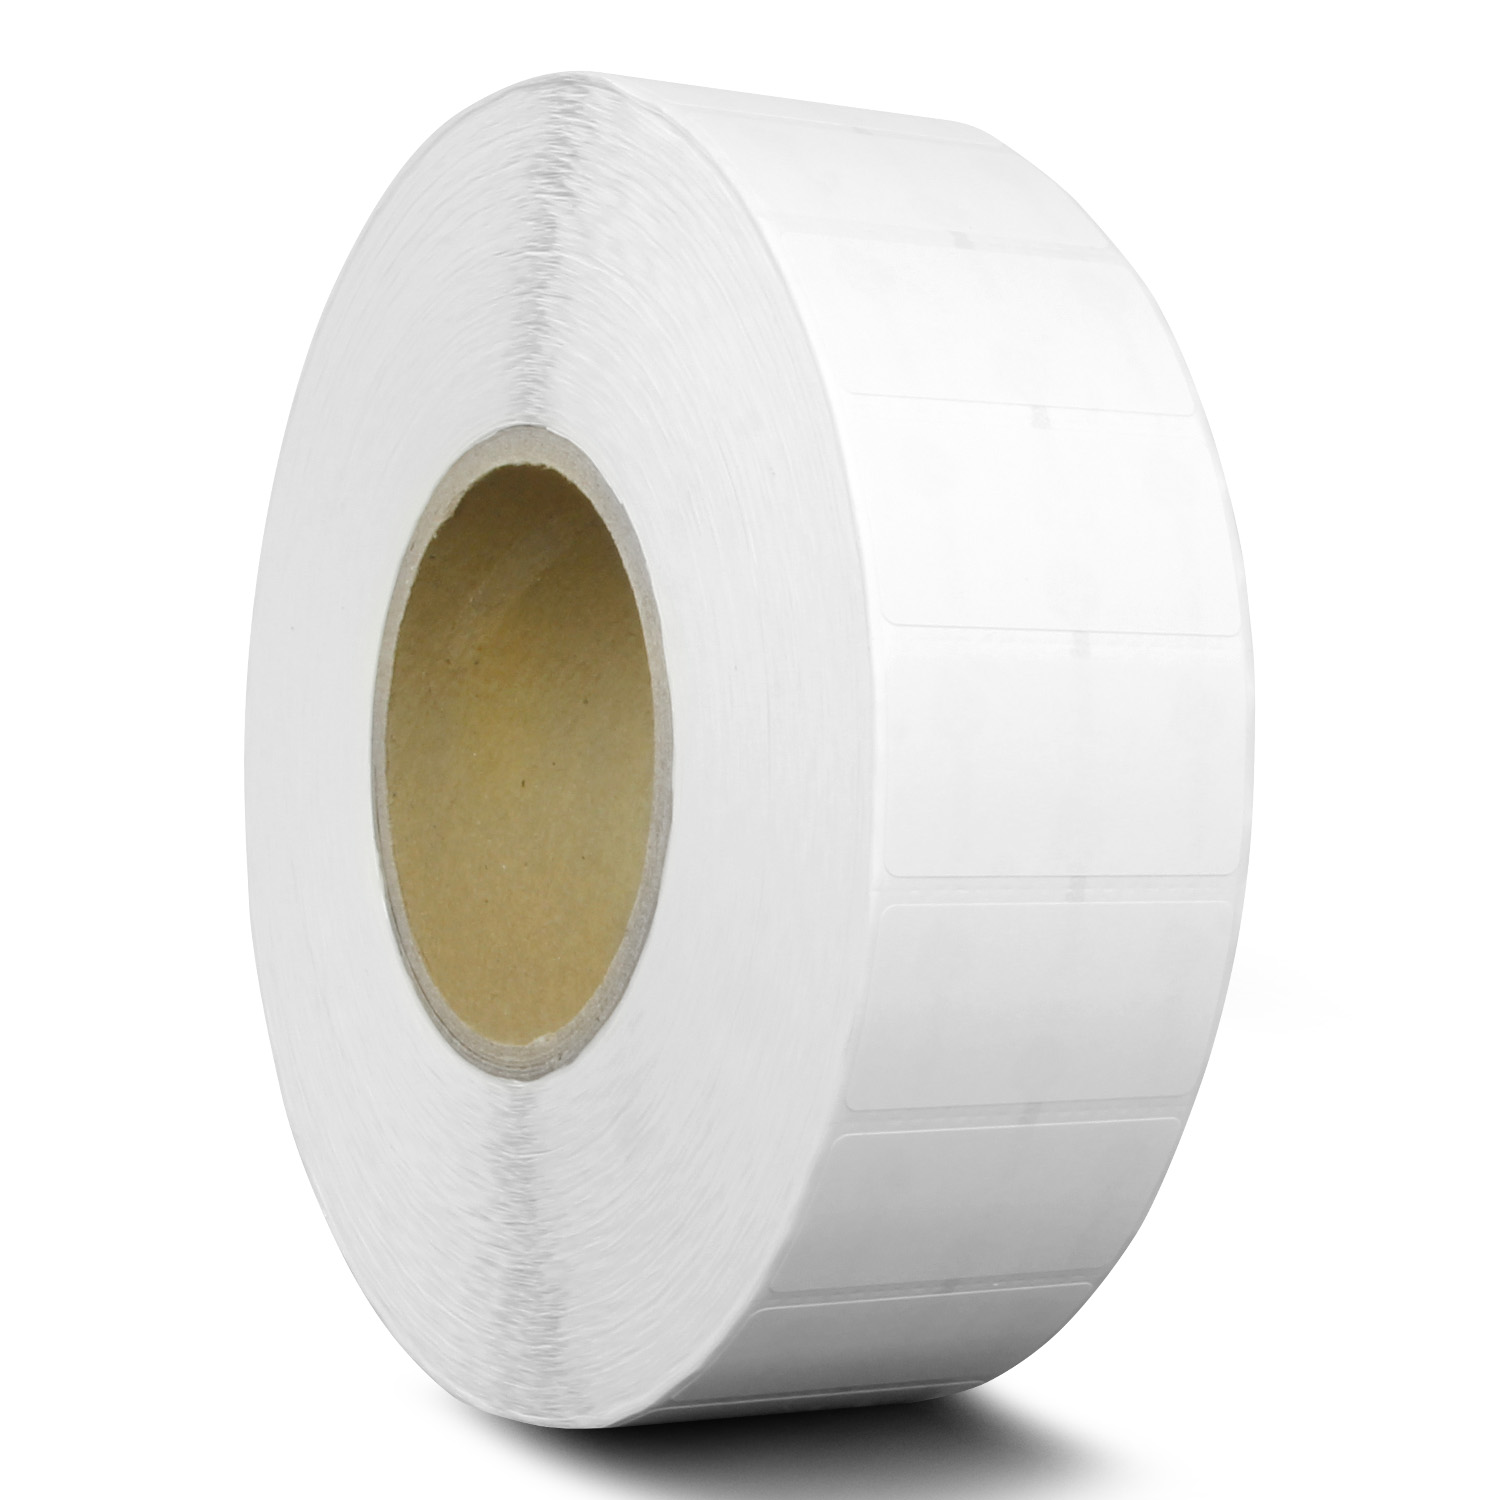 Perforations Between Labels Pack of 3 White CompuLabel Direct Thermal Labels Permanent Adhesive Roll 1300 per Roll, 2-inch x 1 inch 530550